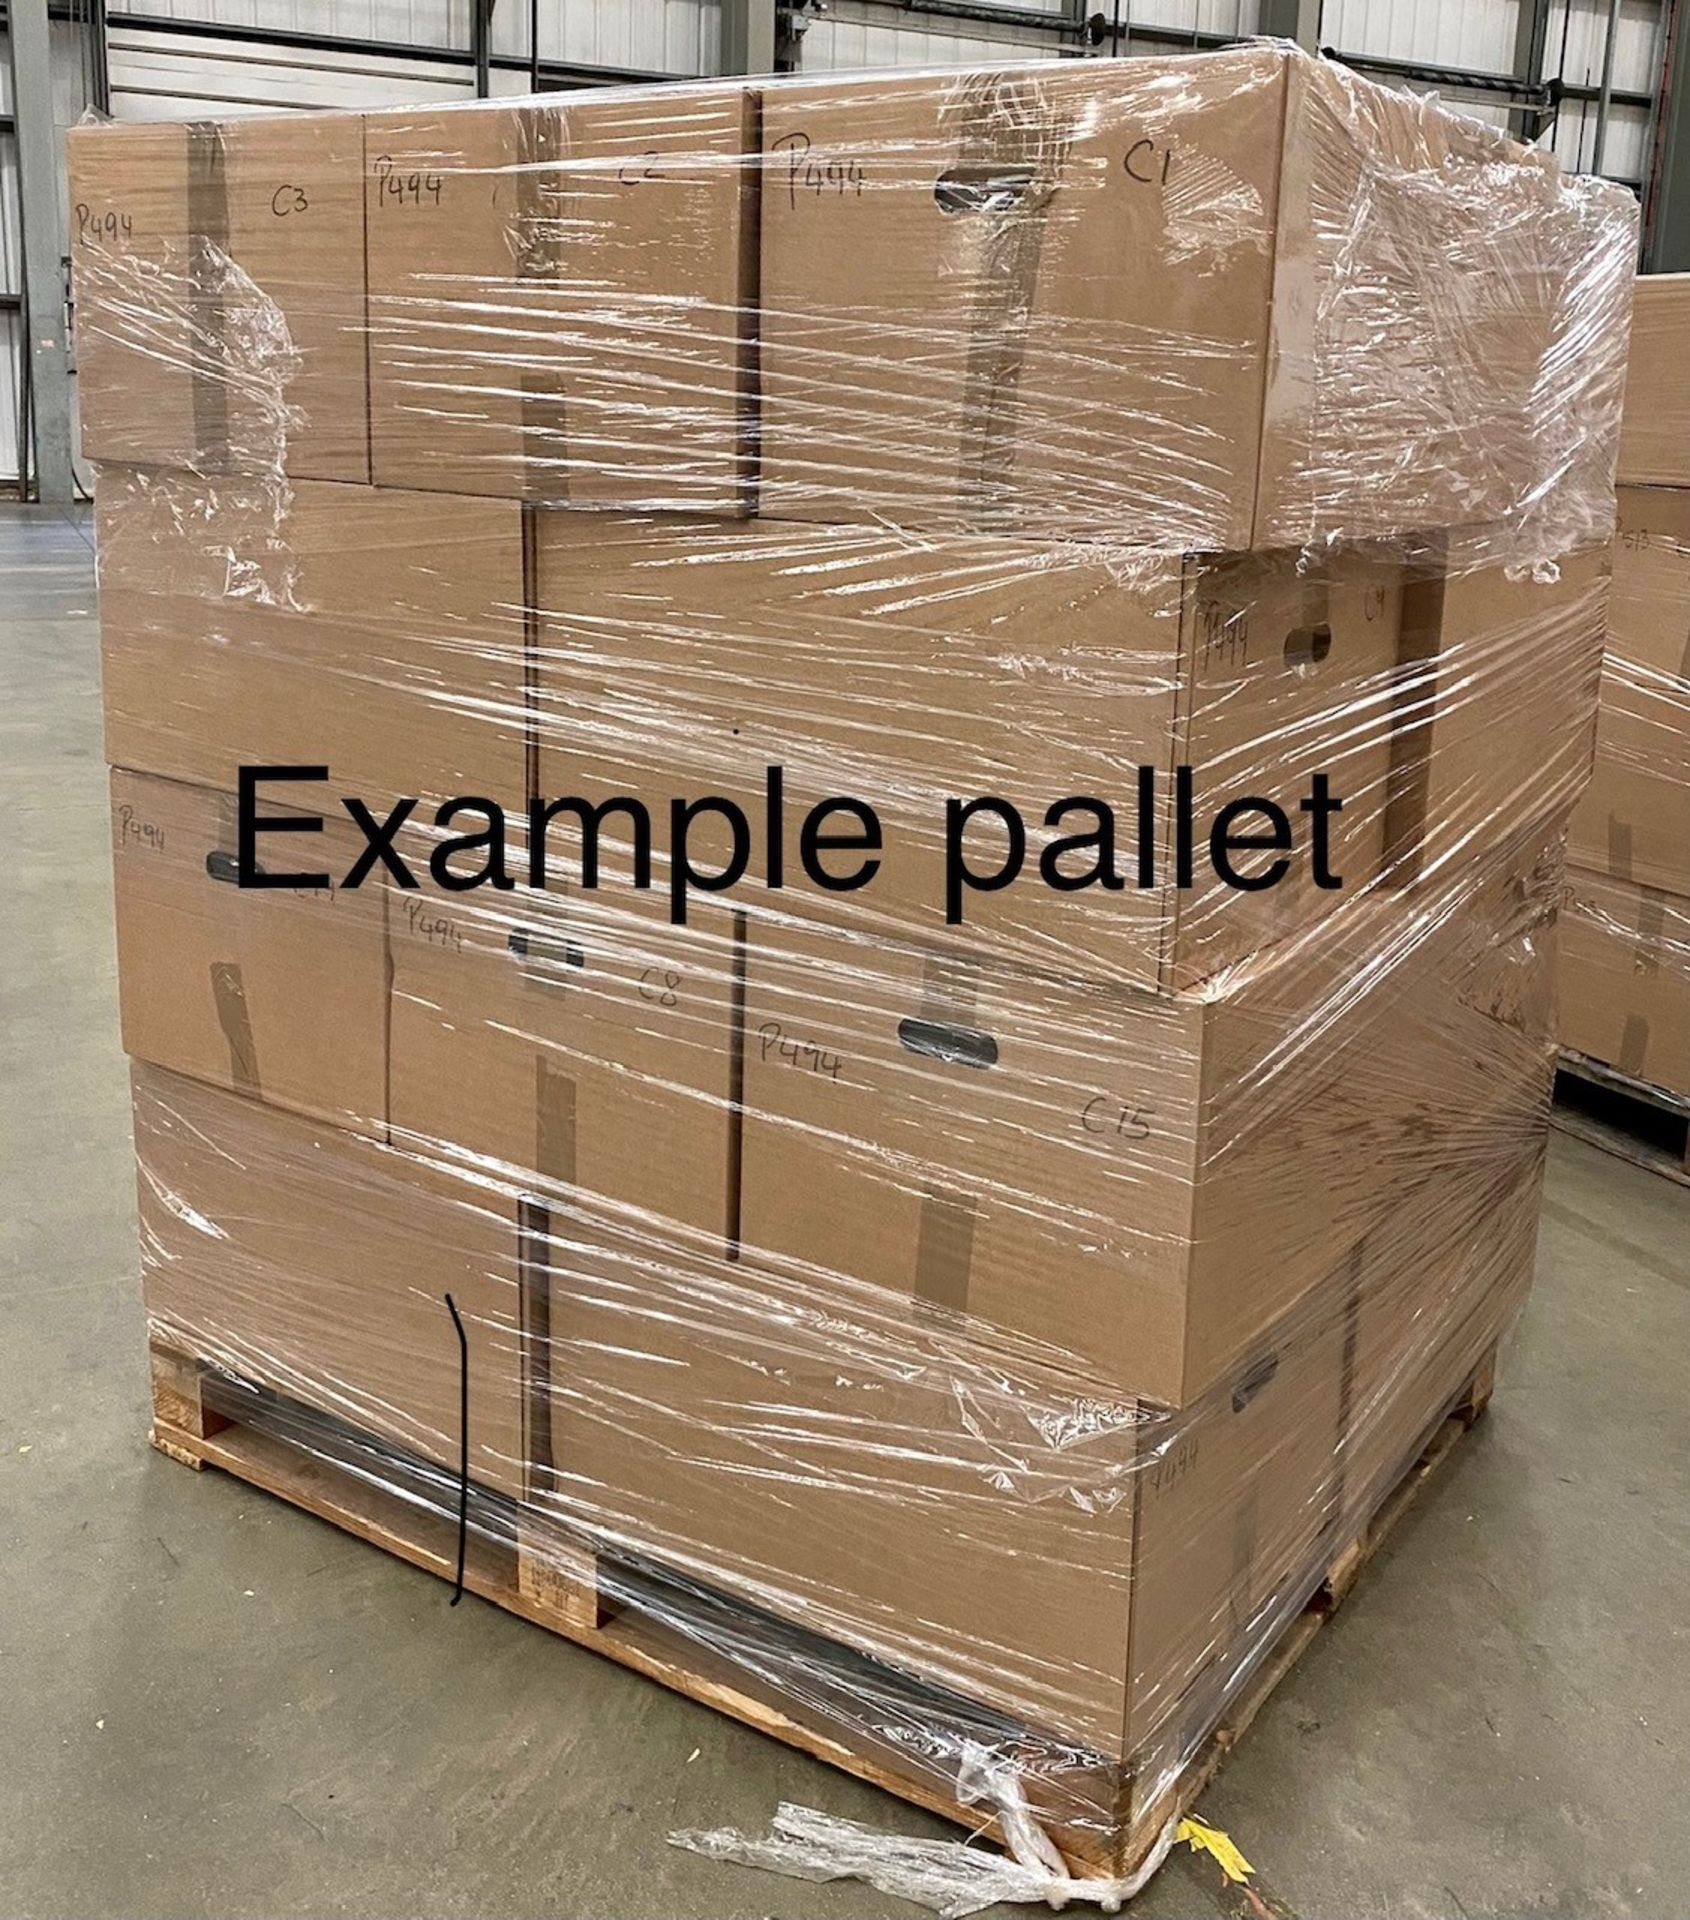 1 x mixed pallet = 73 items of Grade A M&S Womenswear. Approx Total RRP £3412.50 - Image 6 of 7